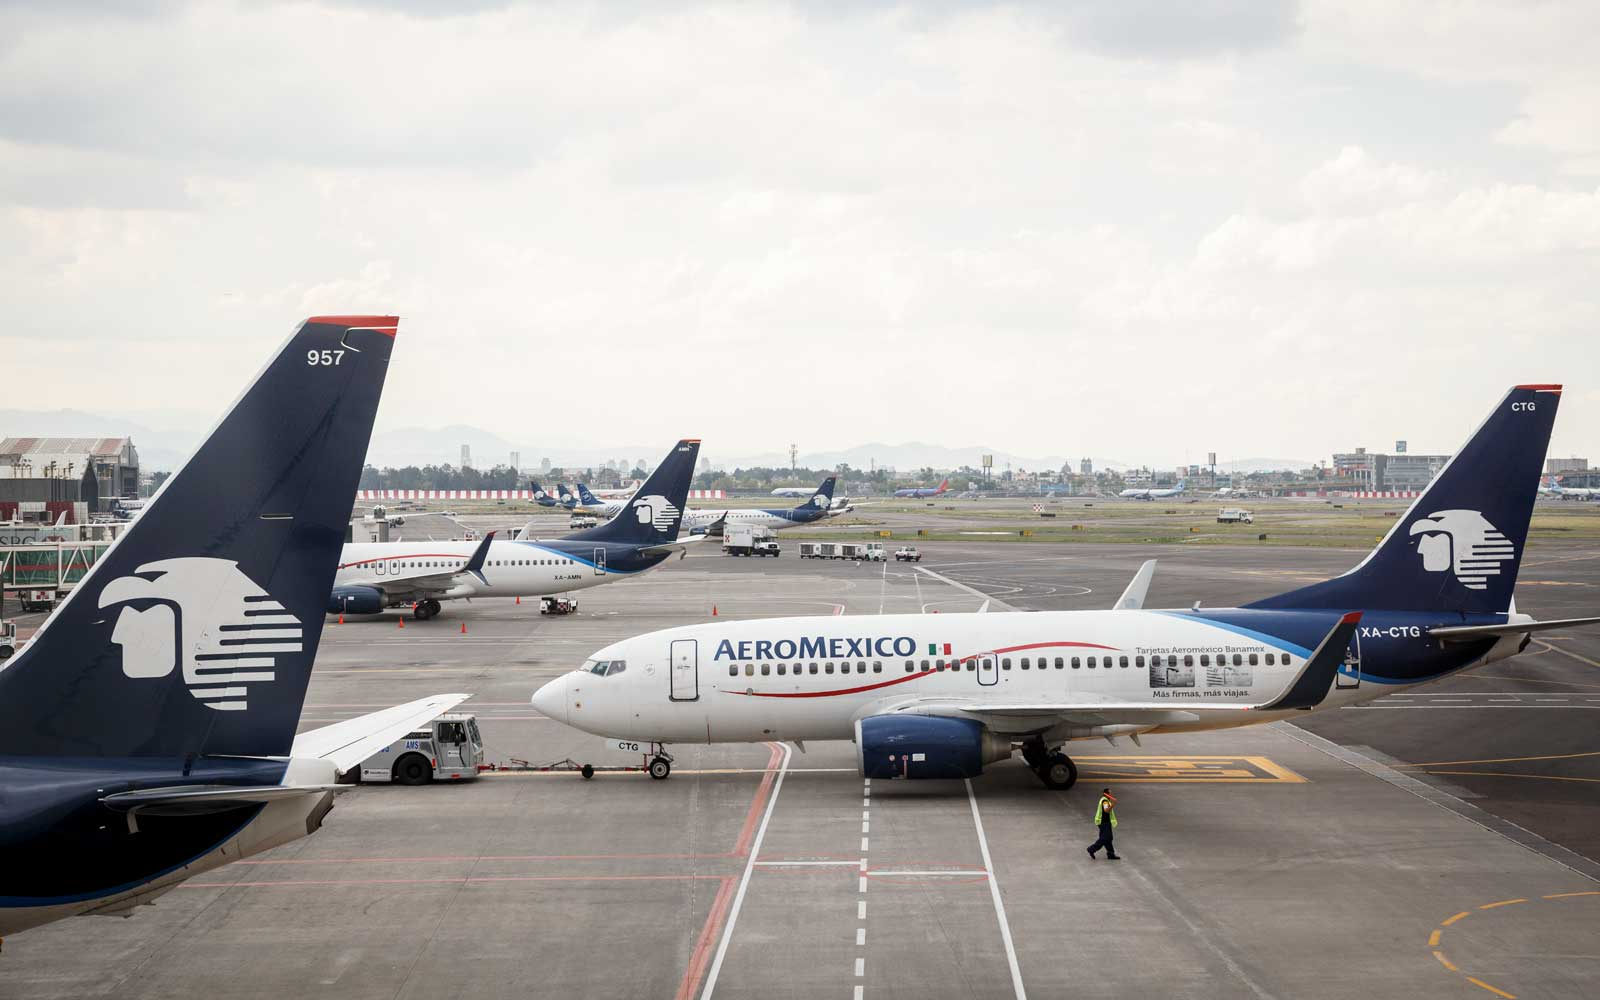 Aeromexico Passengers Attempted to Escape Using Emergency Exits After 5 Hours of Sitting on the Runway